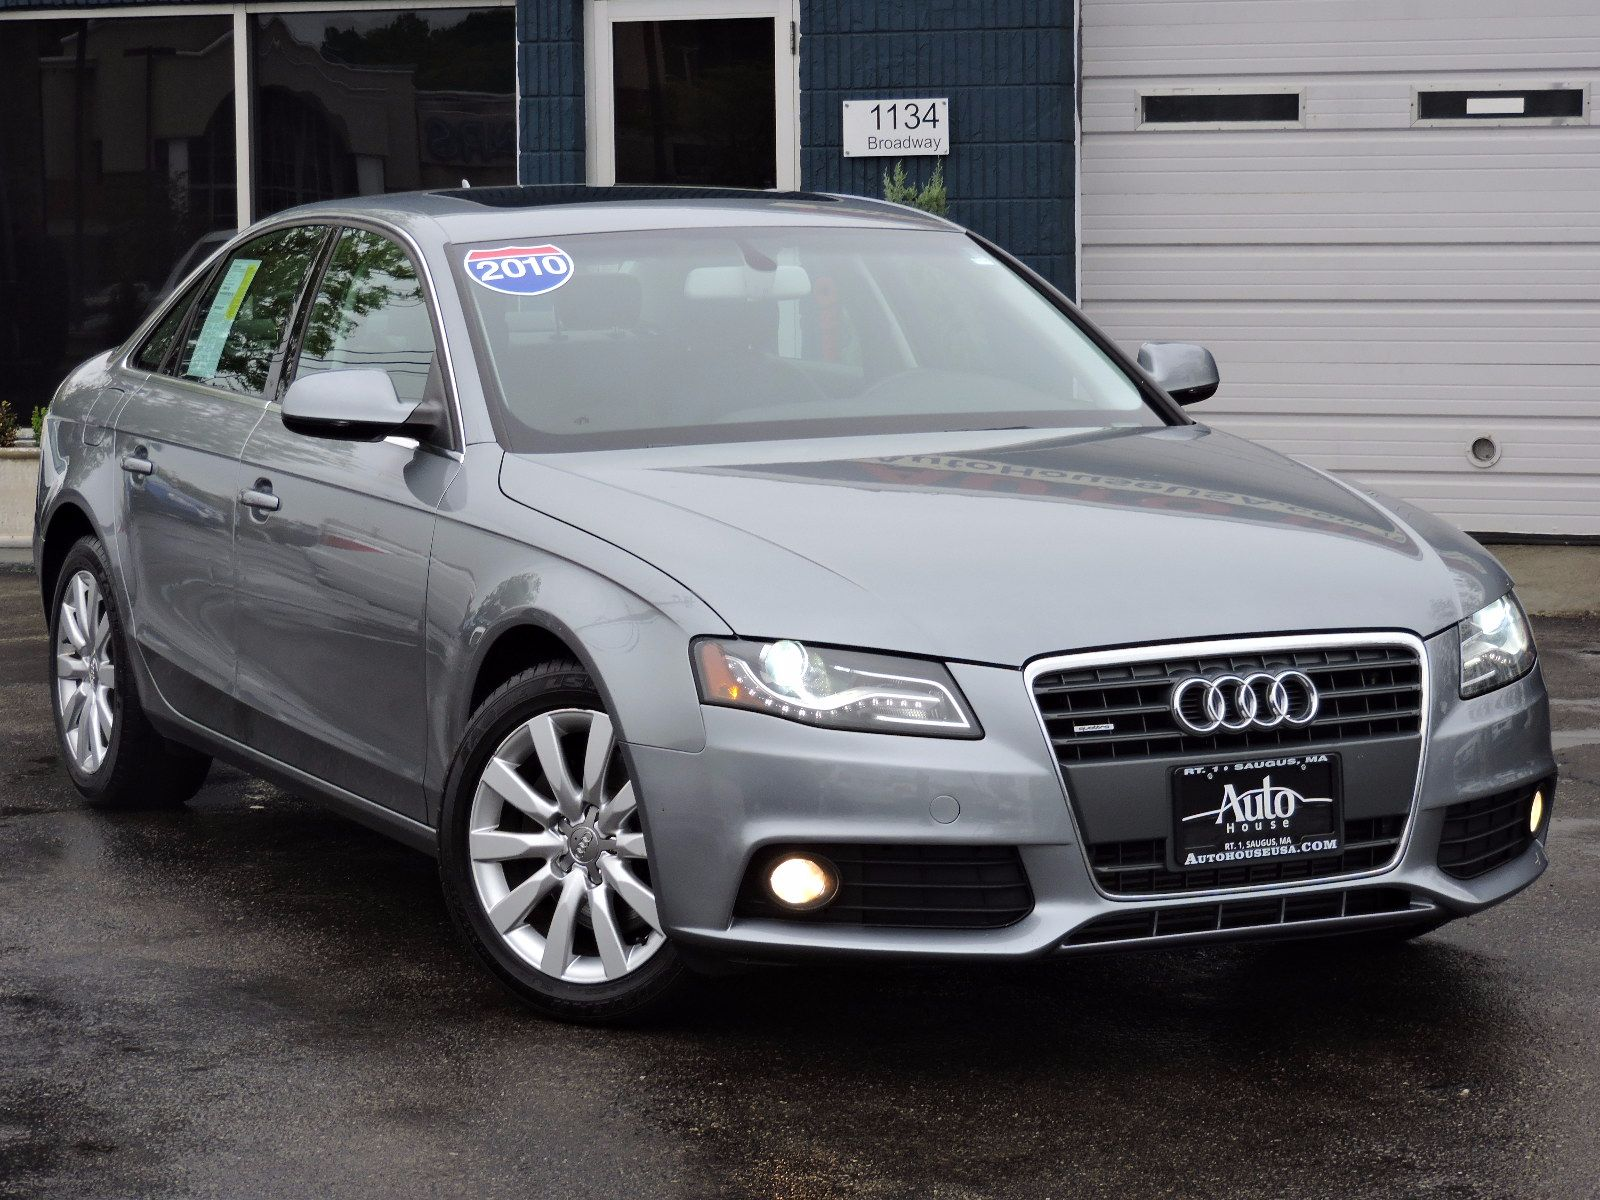 Used Audi A T Premium Plus At Auto House USA Saugus - Audi car 2010